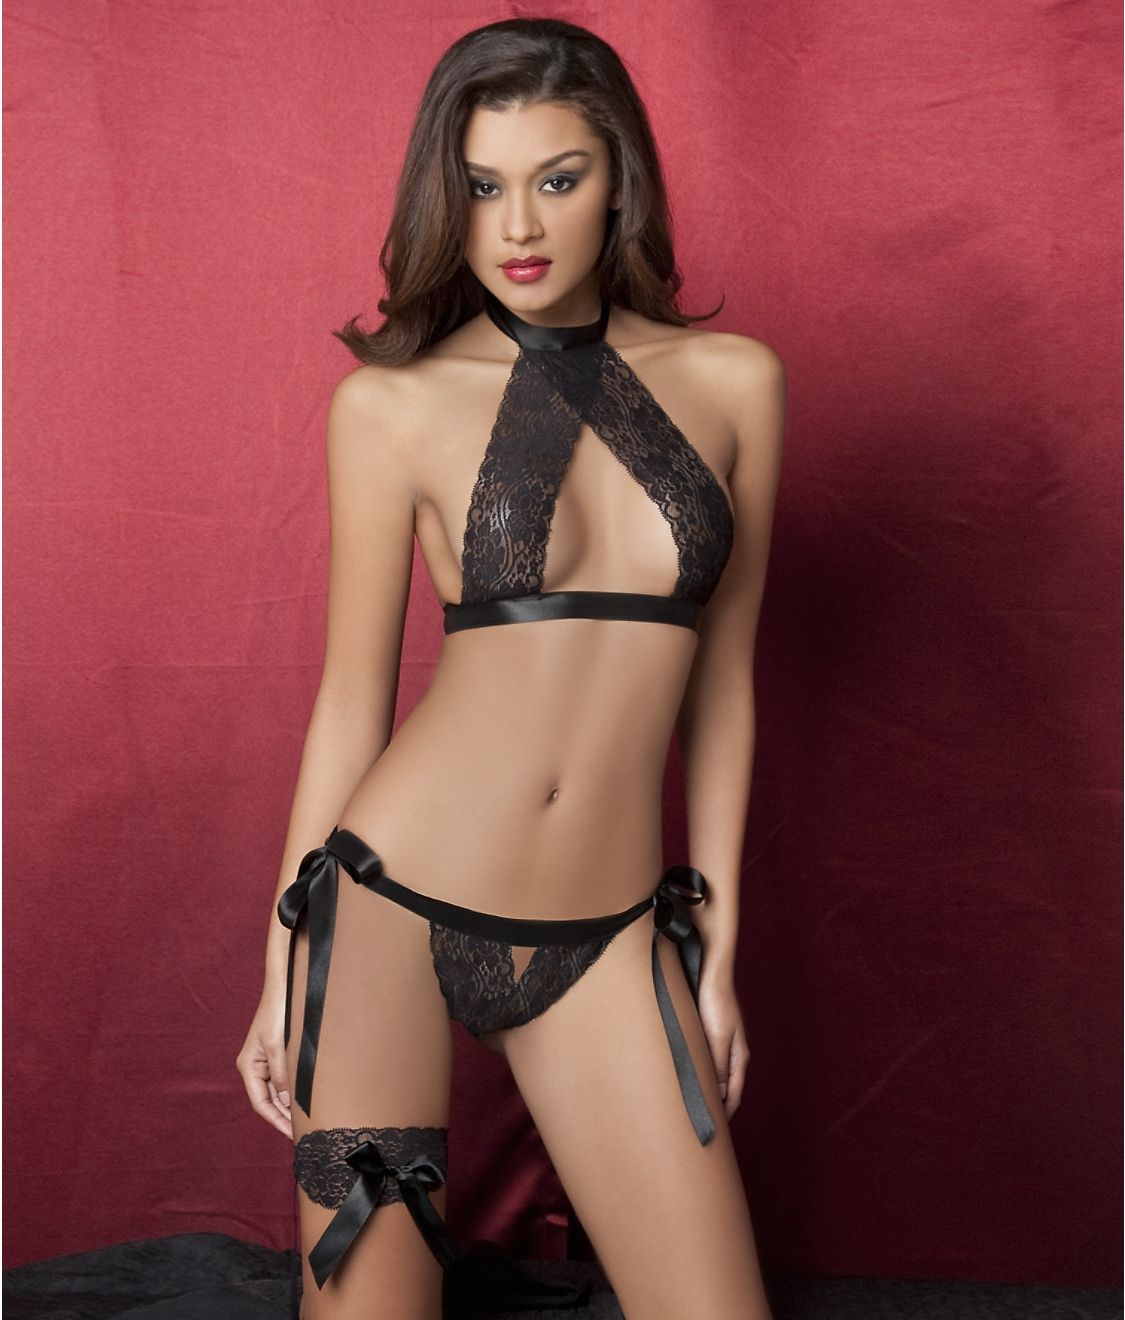 b9fbce77f231 Make every fantasy your sexy reality in Oh La La Cheri lingerie. Glamorous  silhouettes infused with sultry style define this collection of sexy pieces  that ...